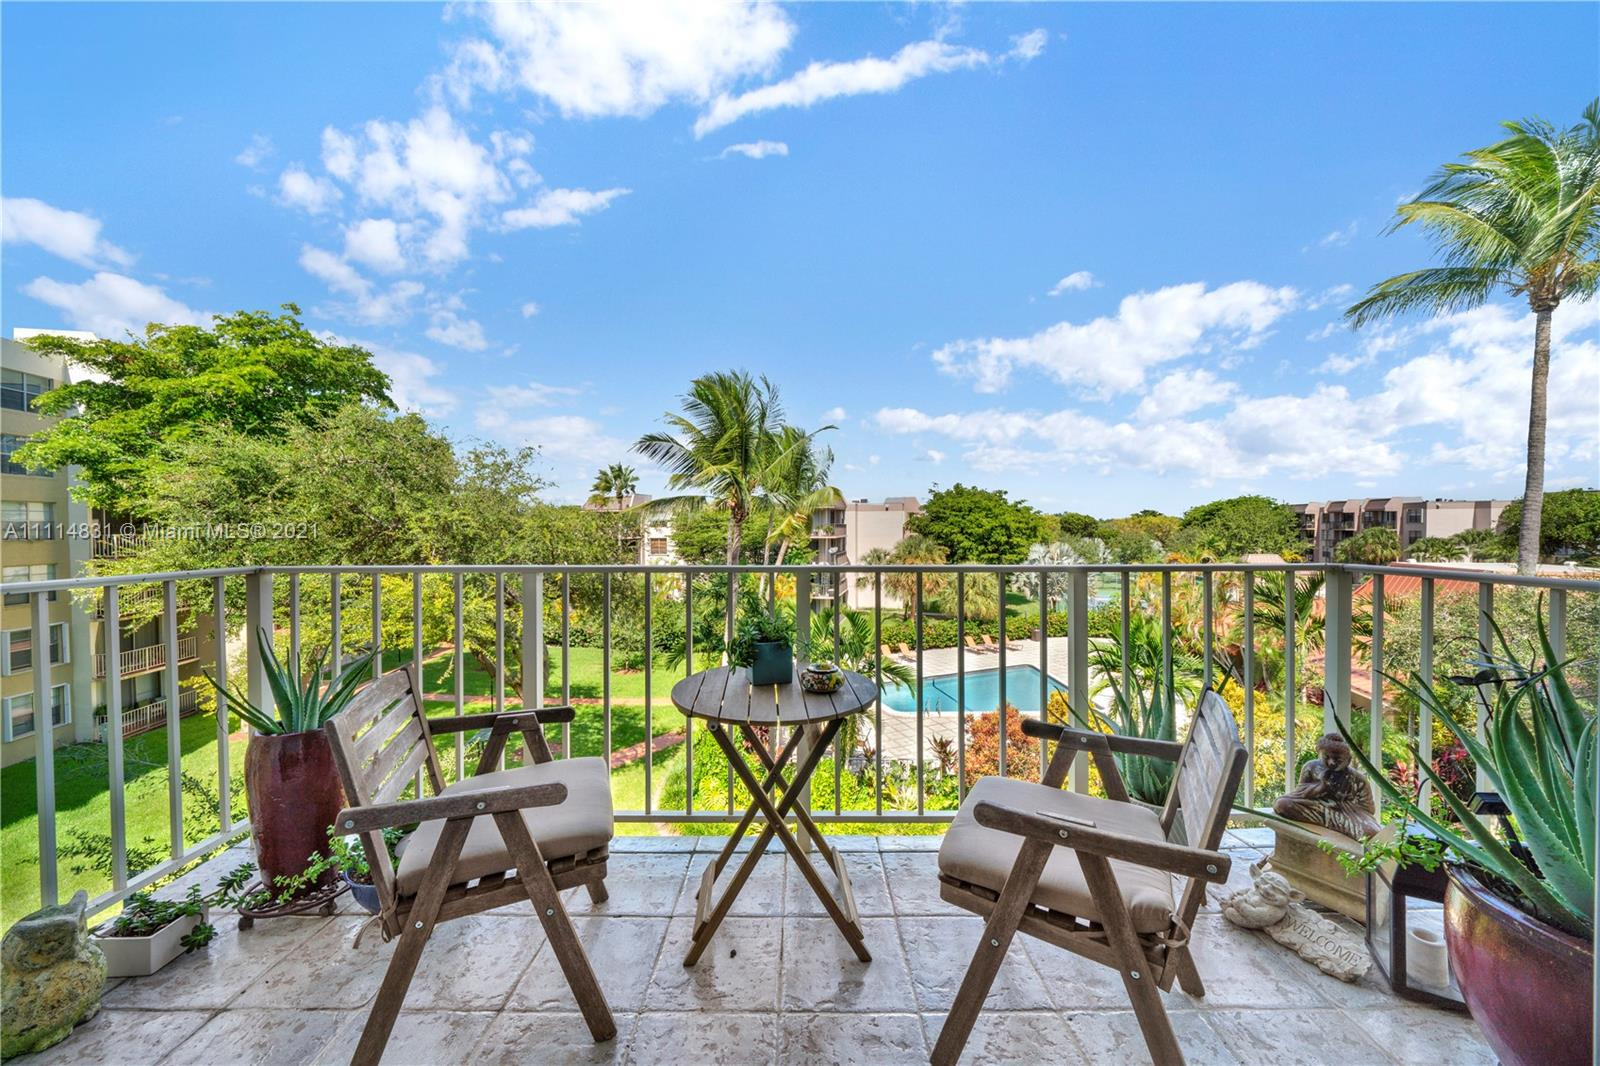 Condo For Sale at VILLAGE AT THE FALLS COND,Briarwinds